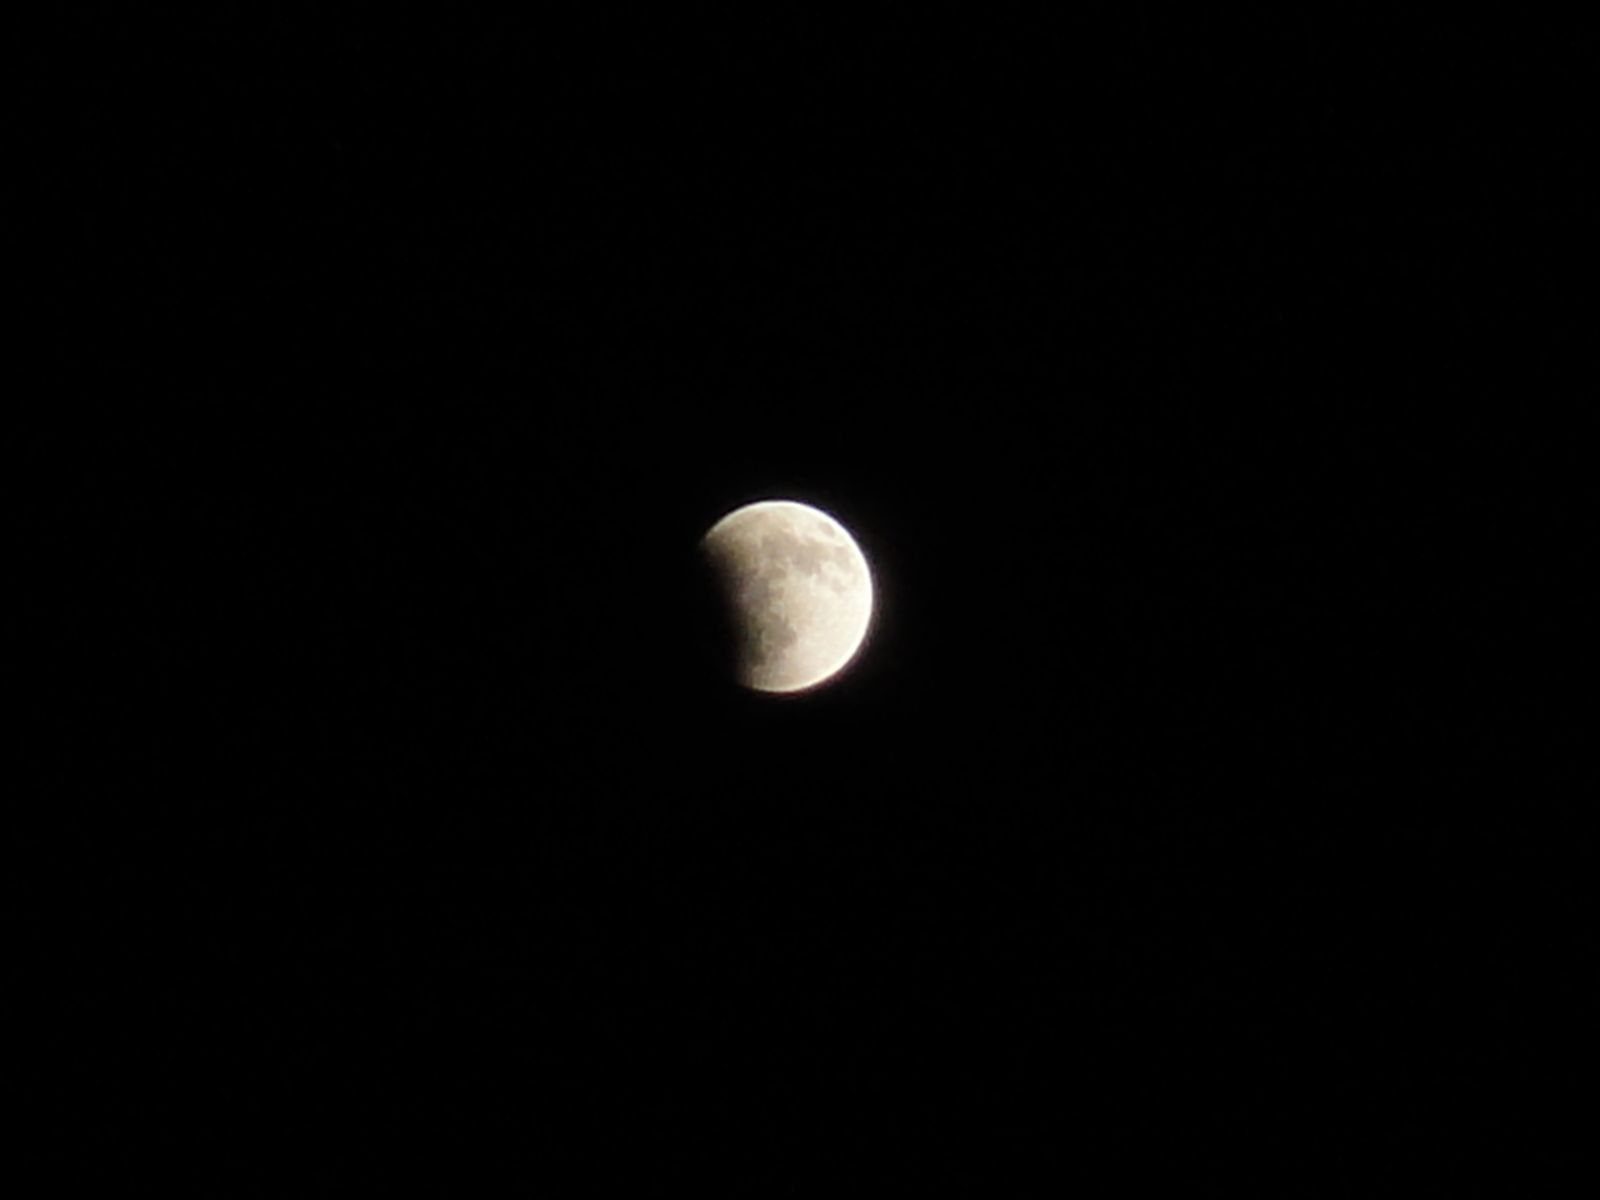 lunar_eclipse_019.jpg